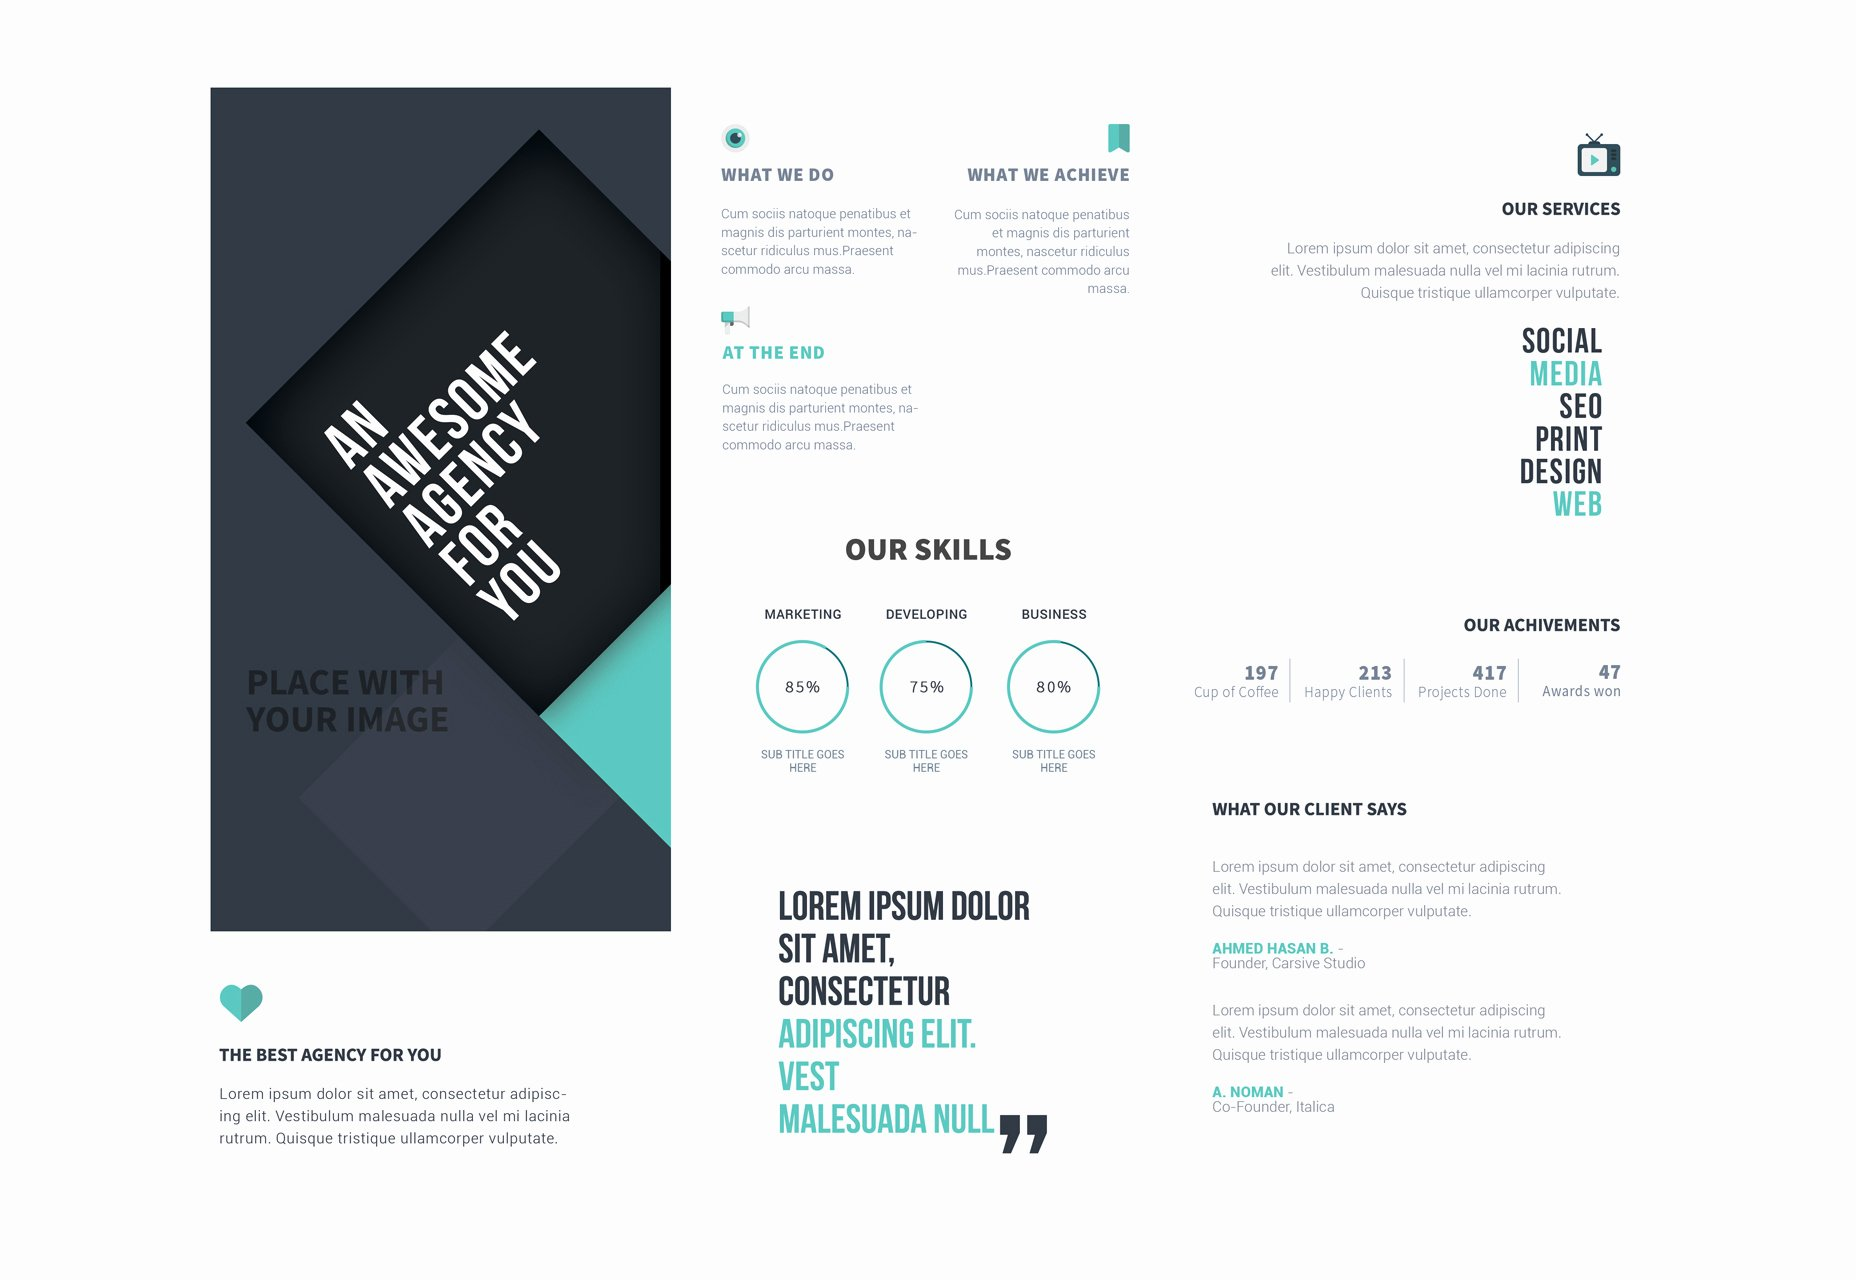 Photoshop Trifold Brochure Template Awesome 50 Incredible Freebies for Web Designers June 2015